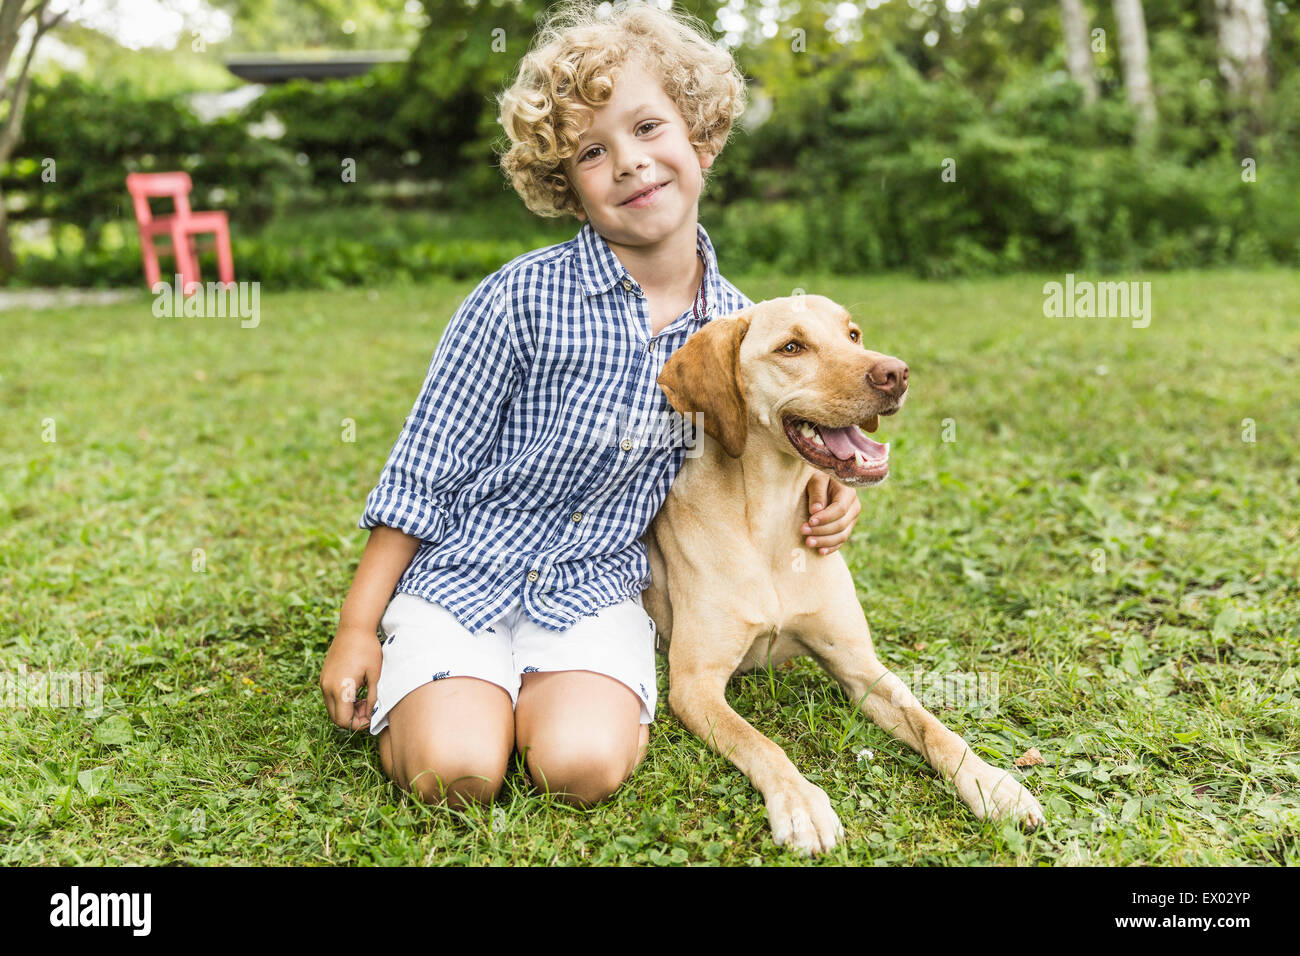 Portrait of boy sitting with dog in garden Stock Photo